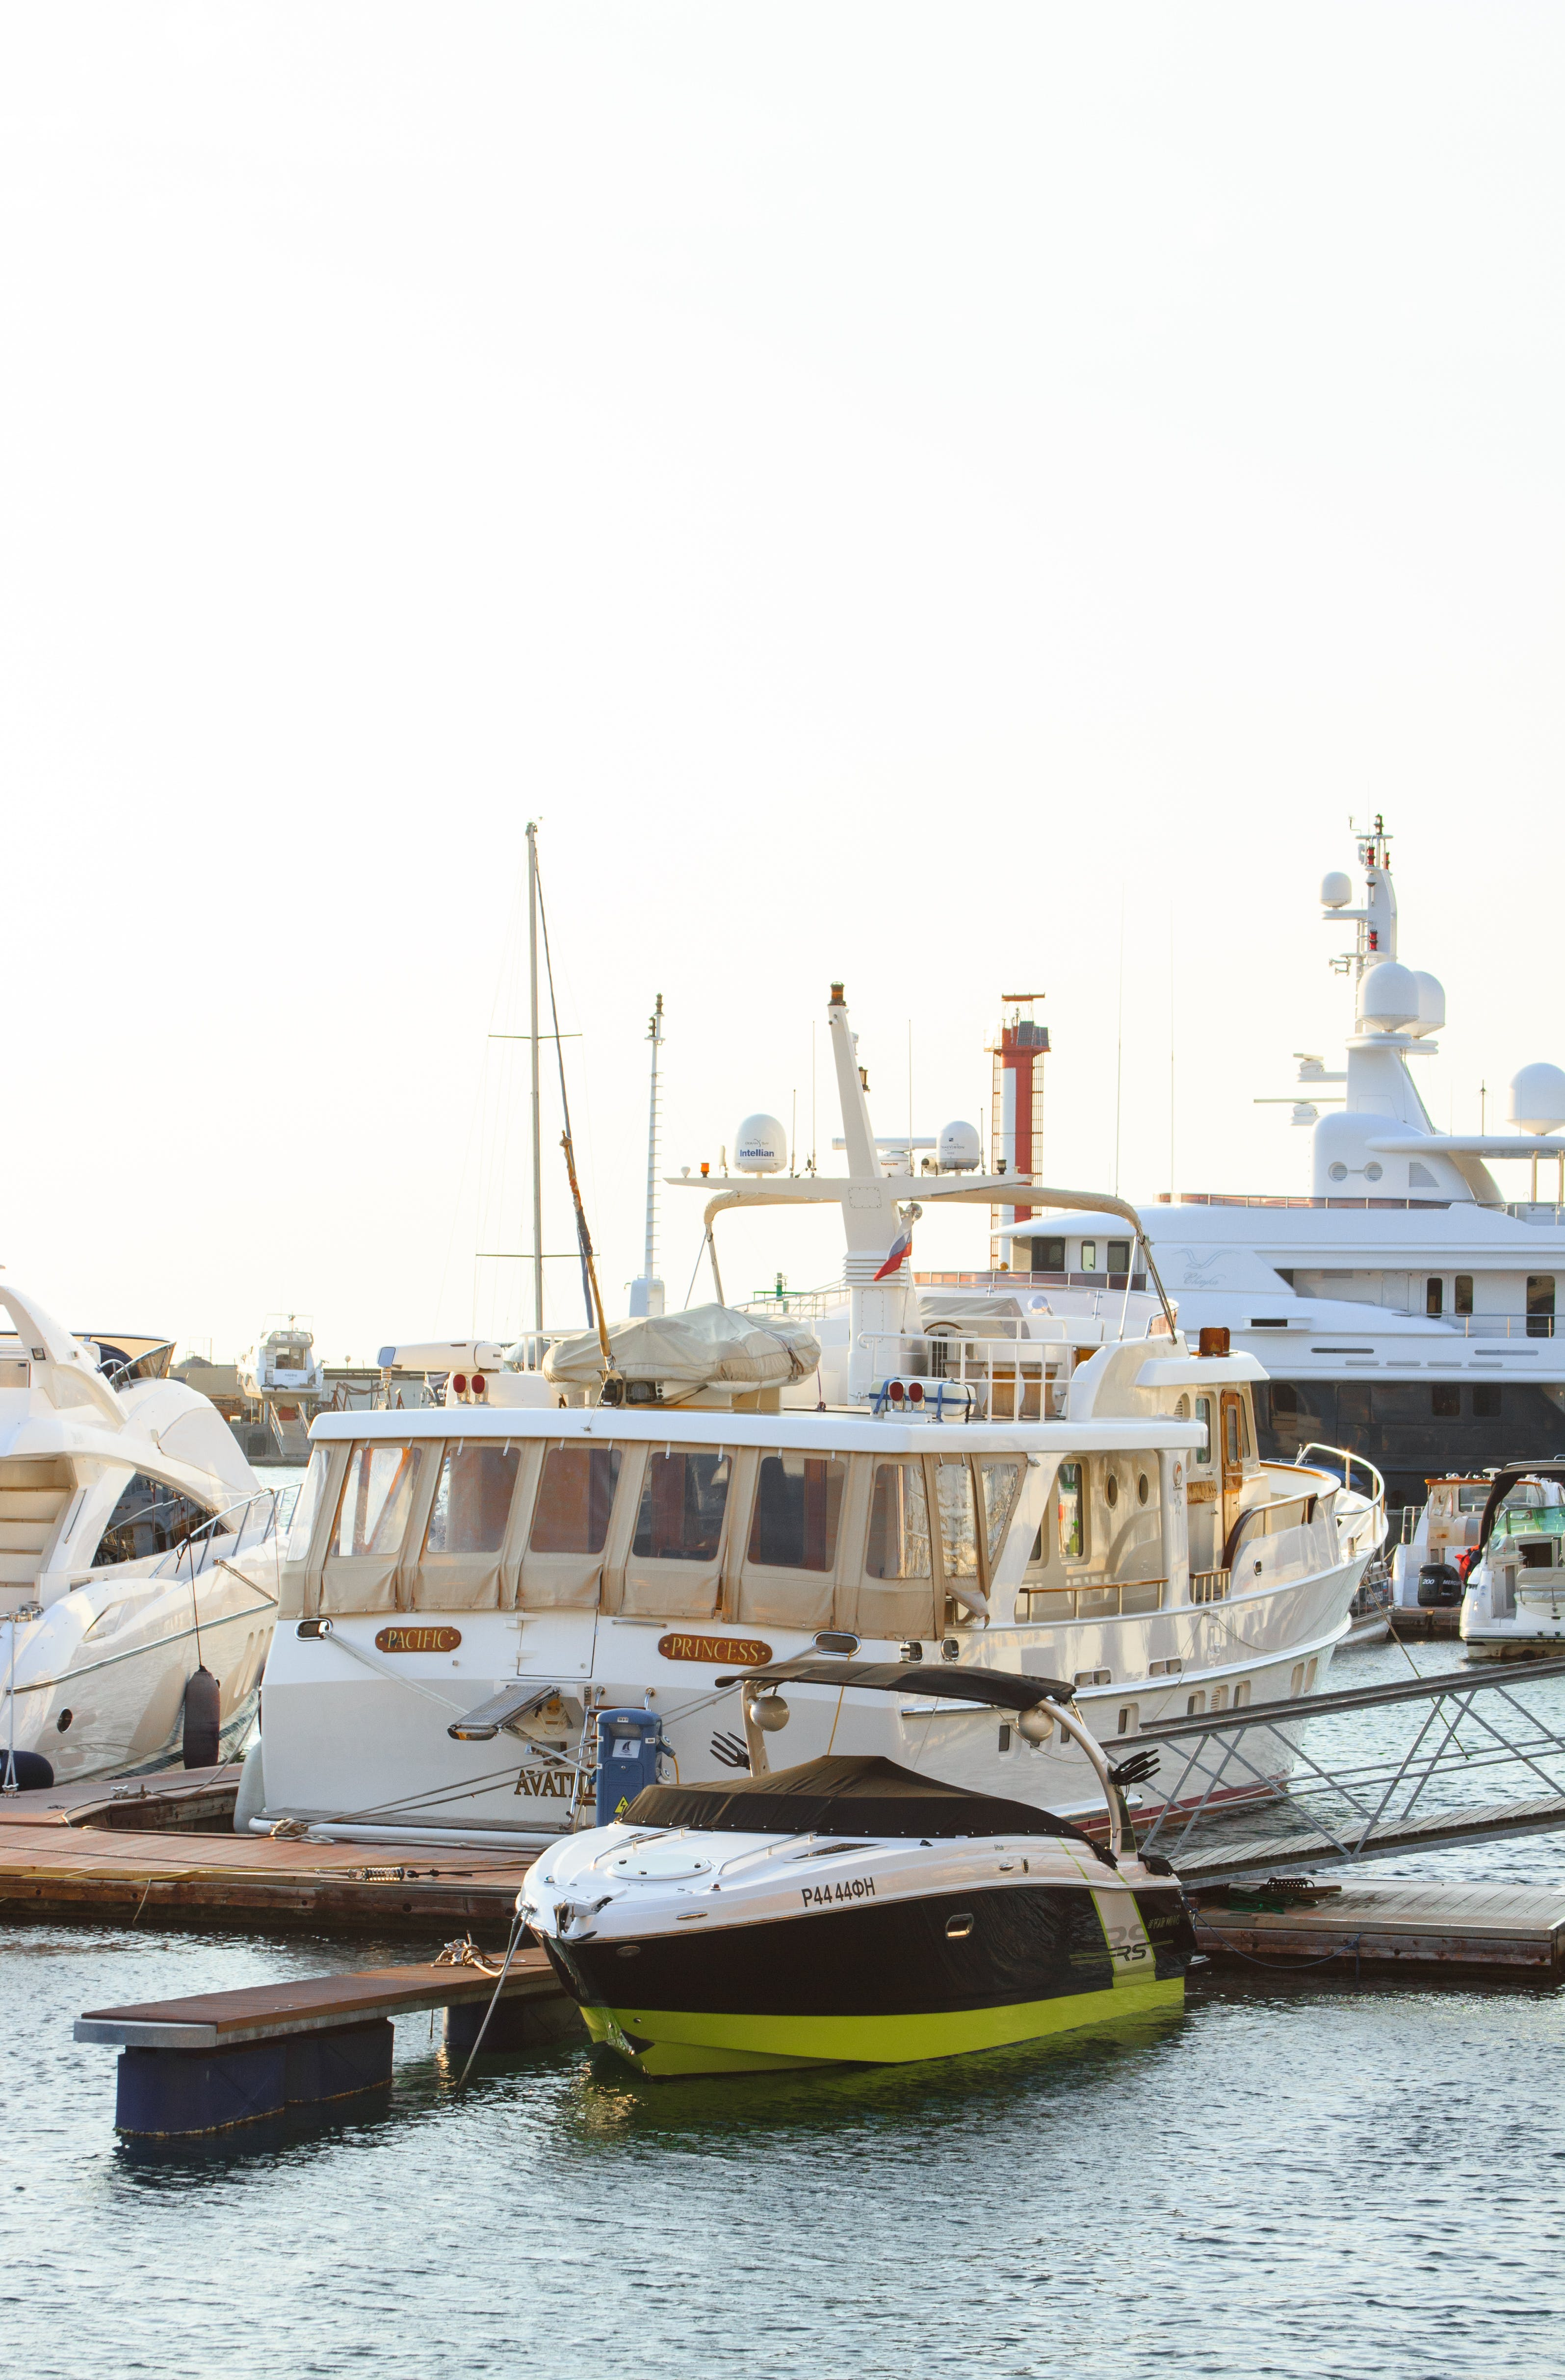 White Yacht Parked on Wooden Dock